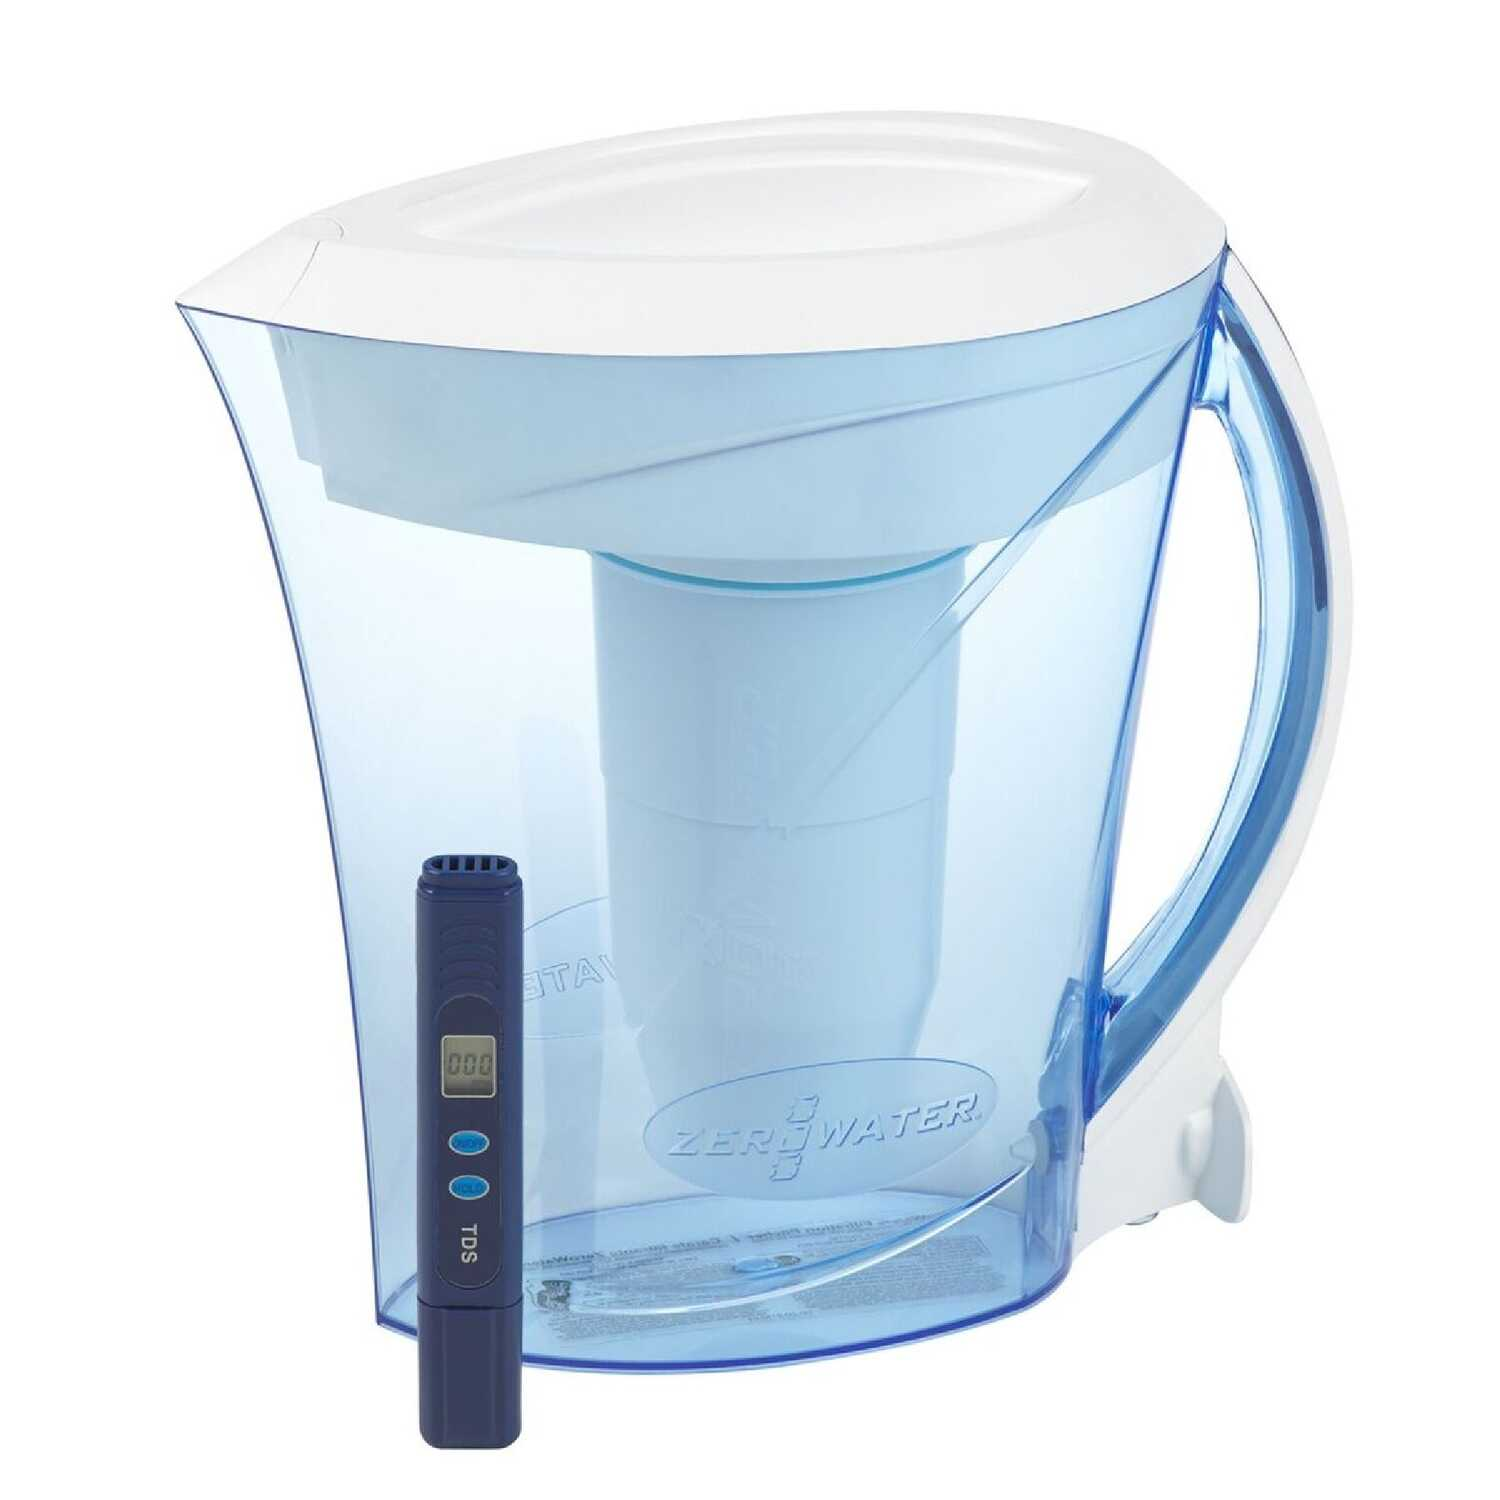 ZeroWater Blue/White 8 cups Blue Water Filtration Pitcher - Ace Hardware